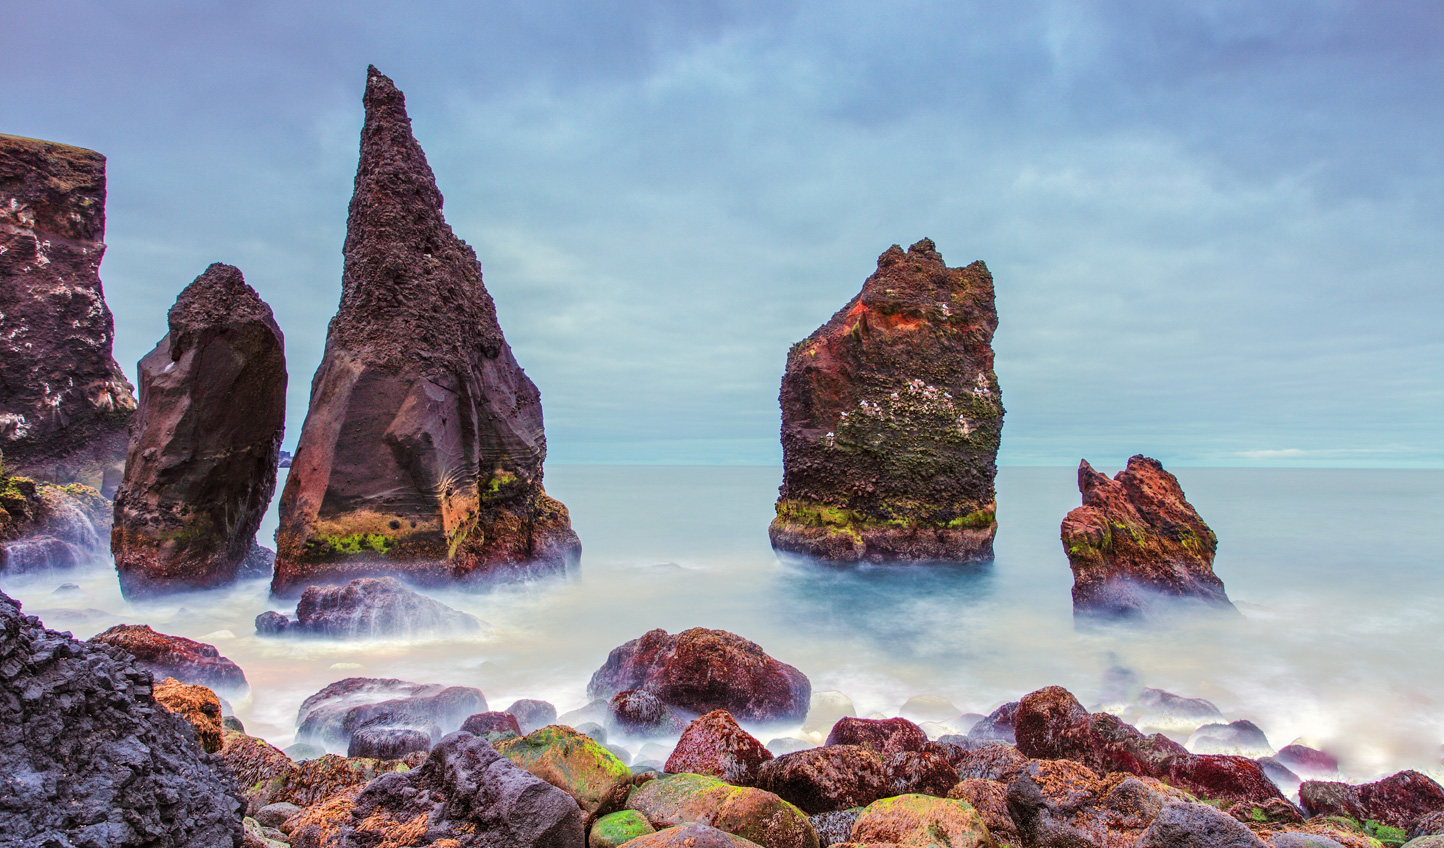 Journey out to the Reykjanes Peninsula and its brooding landscapes